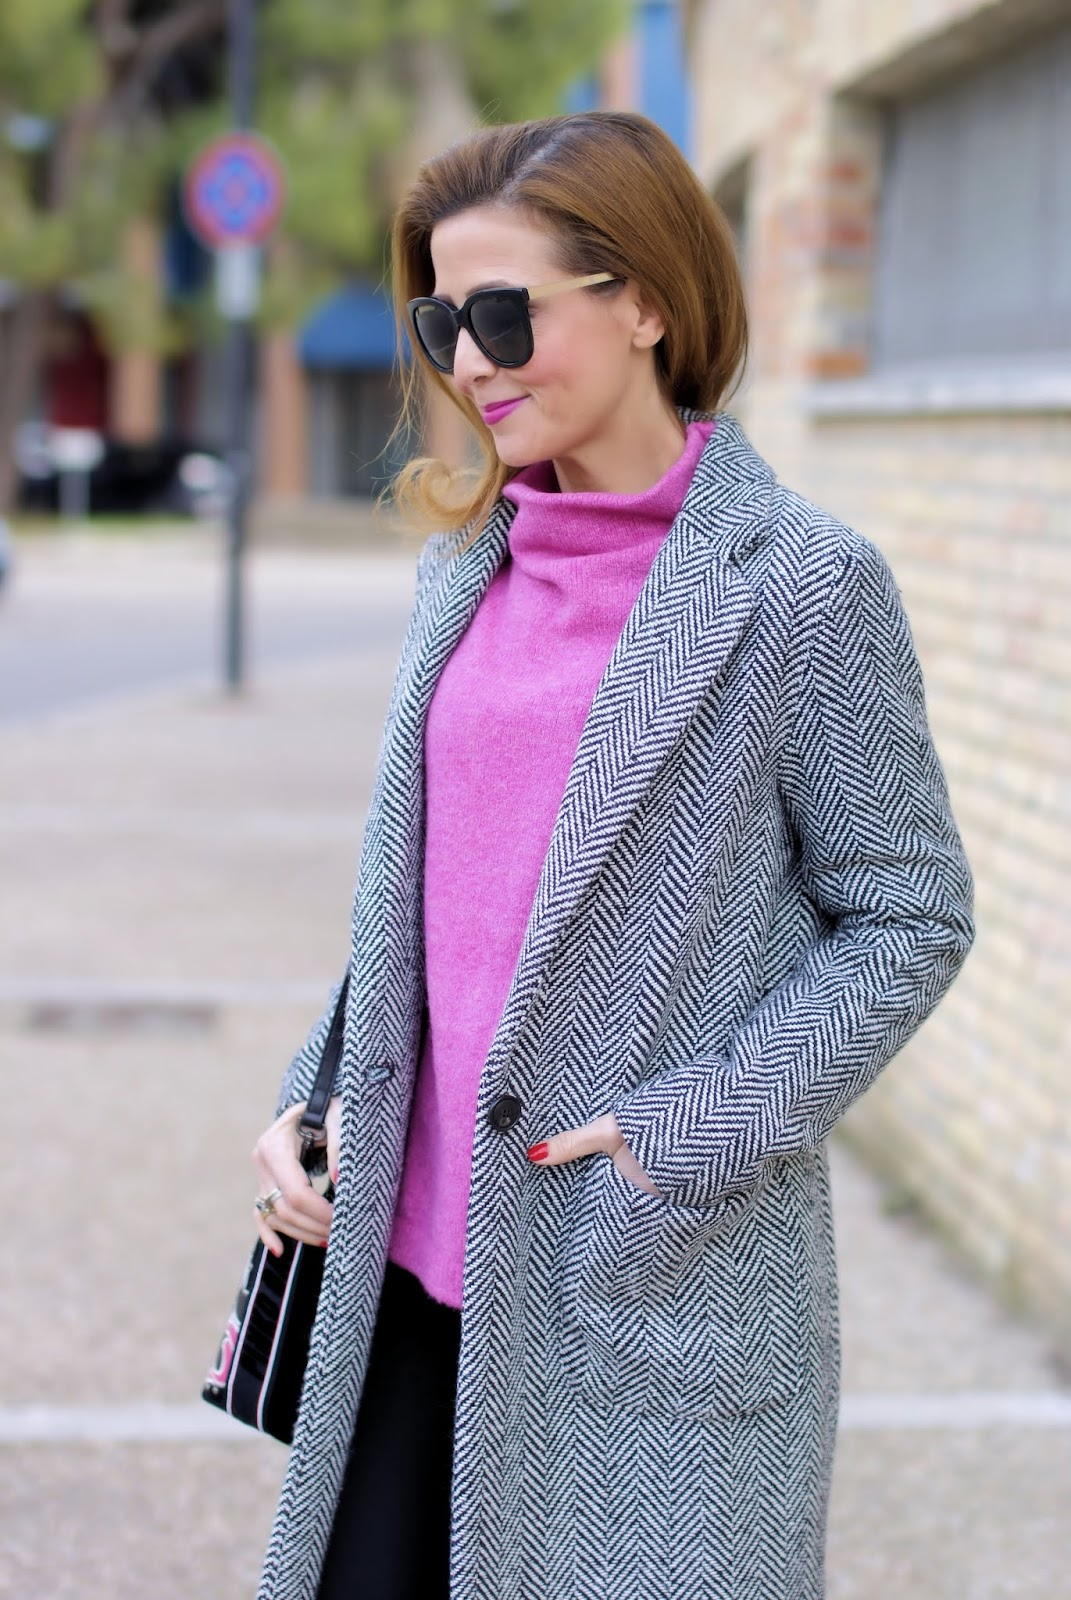 Don't stop me now: last outfit of 2018 with candy pink sweater on Fashion and Cookies fashion blog, fashion blogger style